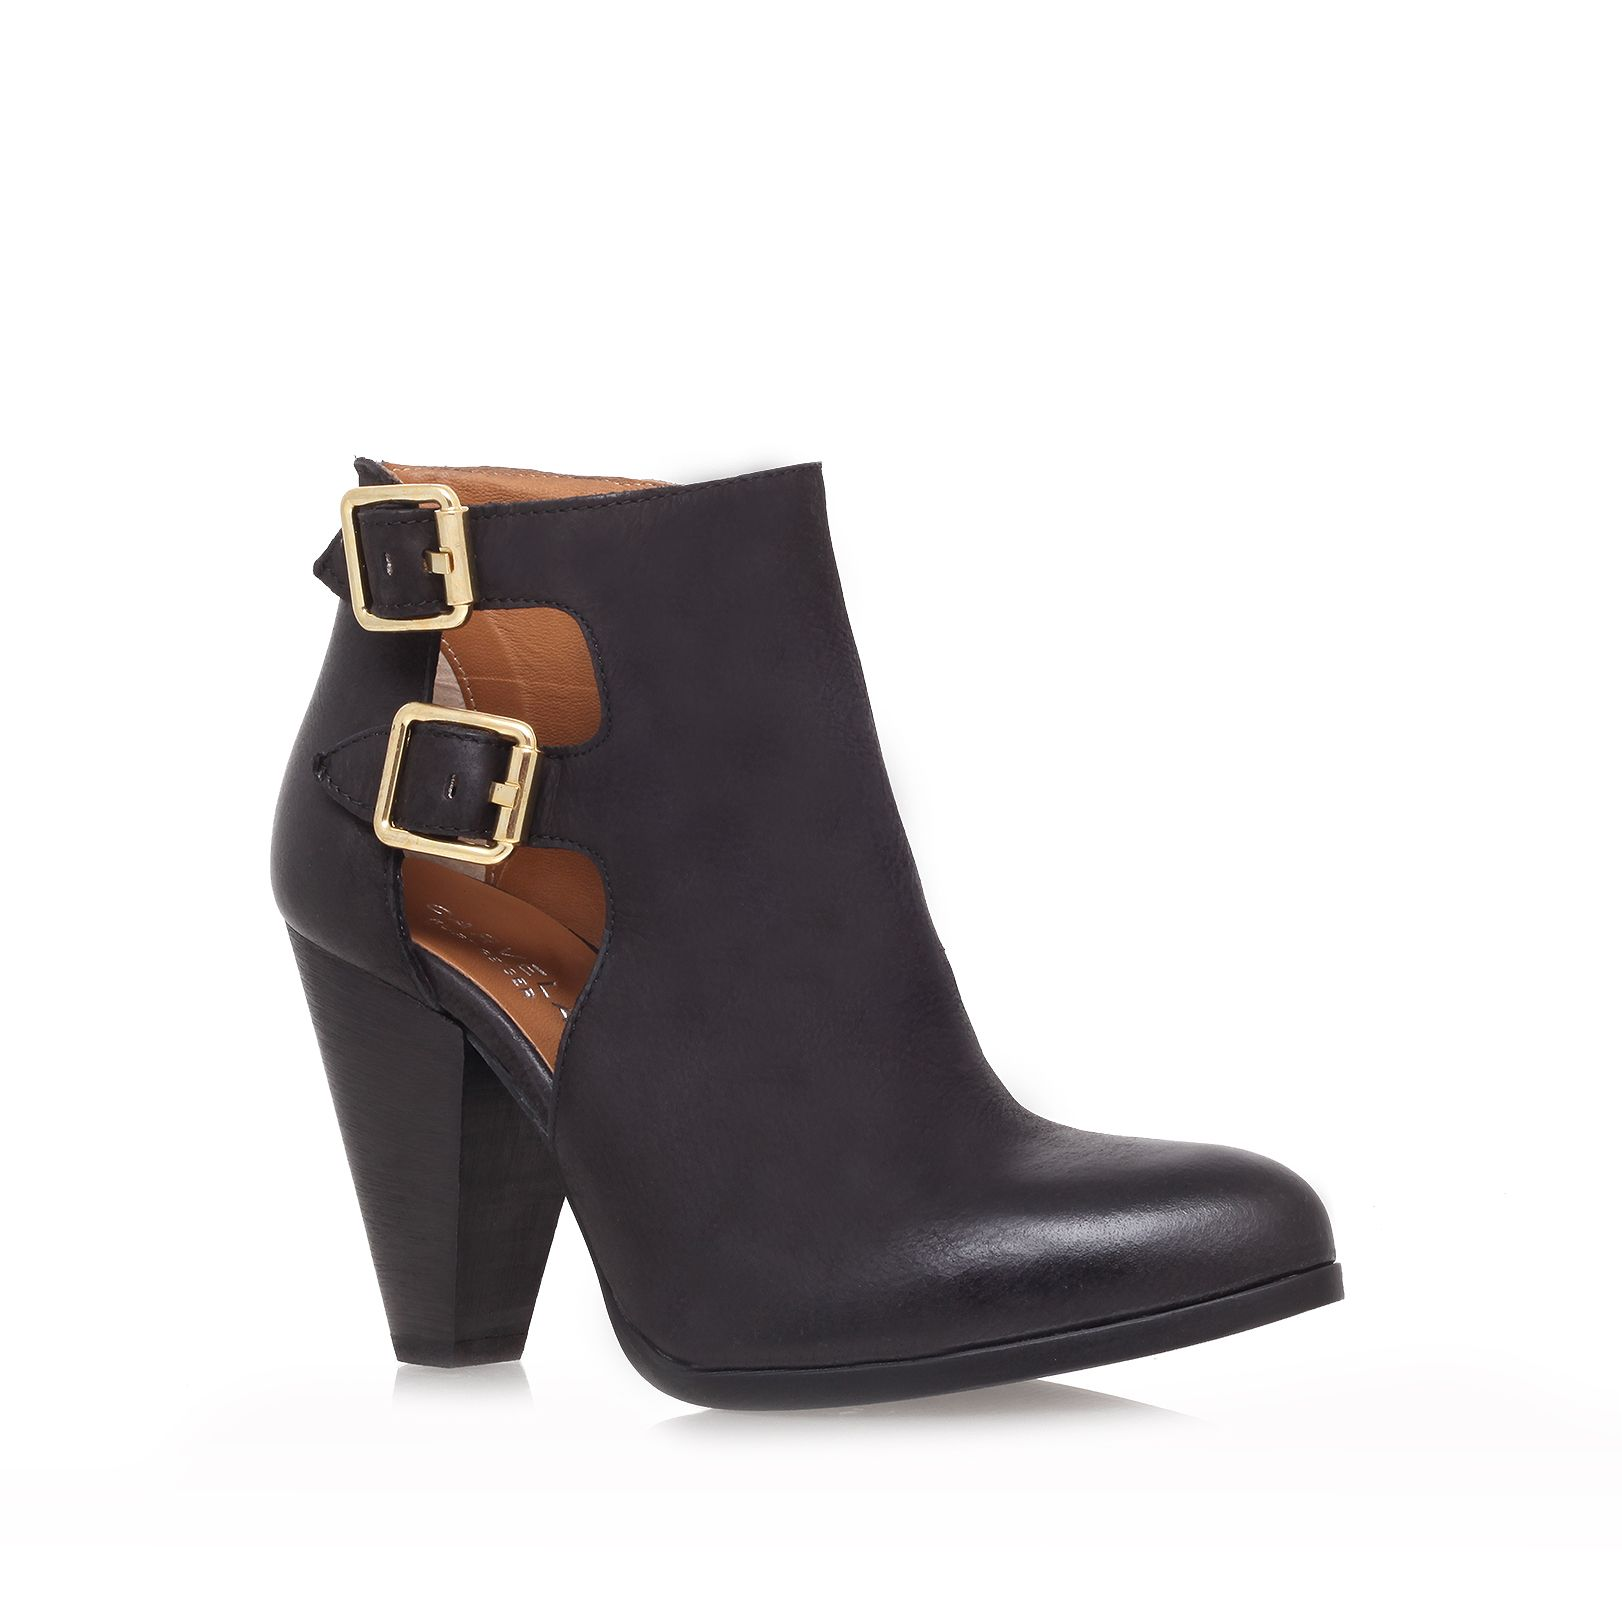 Shylock high heel ankle boots